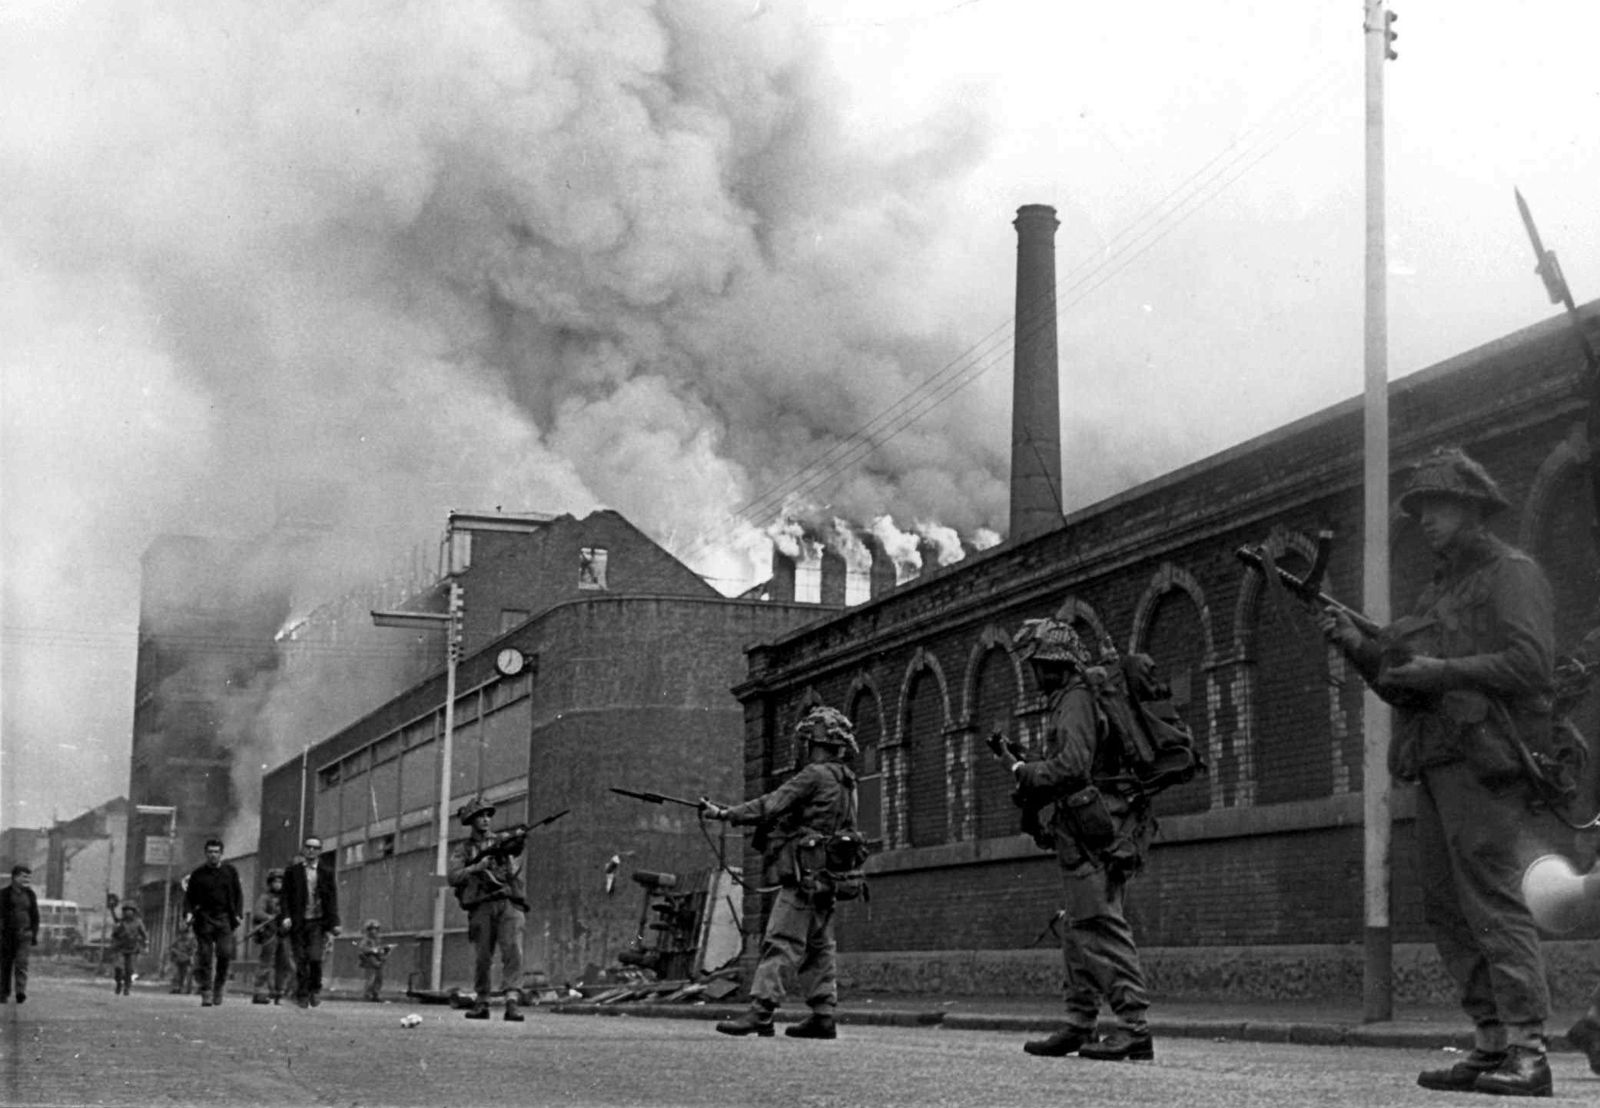 In 1969, British troops went to Northern Ireland to intervene in sectarian violence between Protestants and Roman Catholics. (AP Photo).